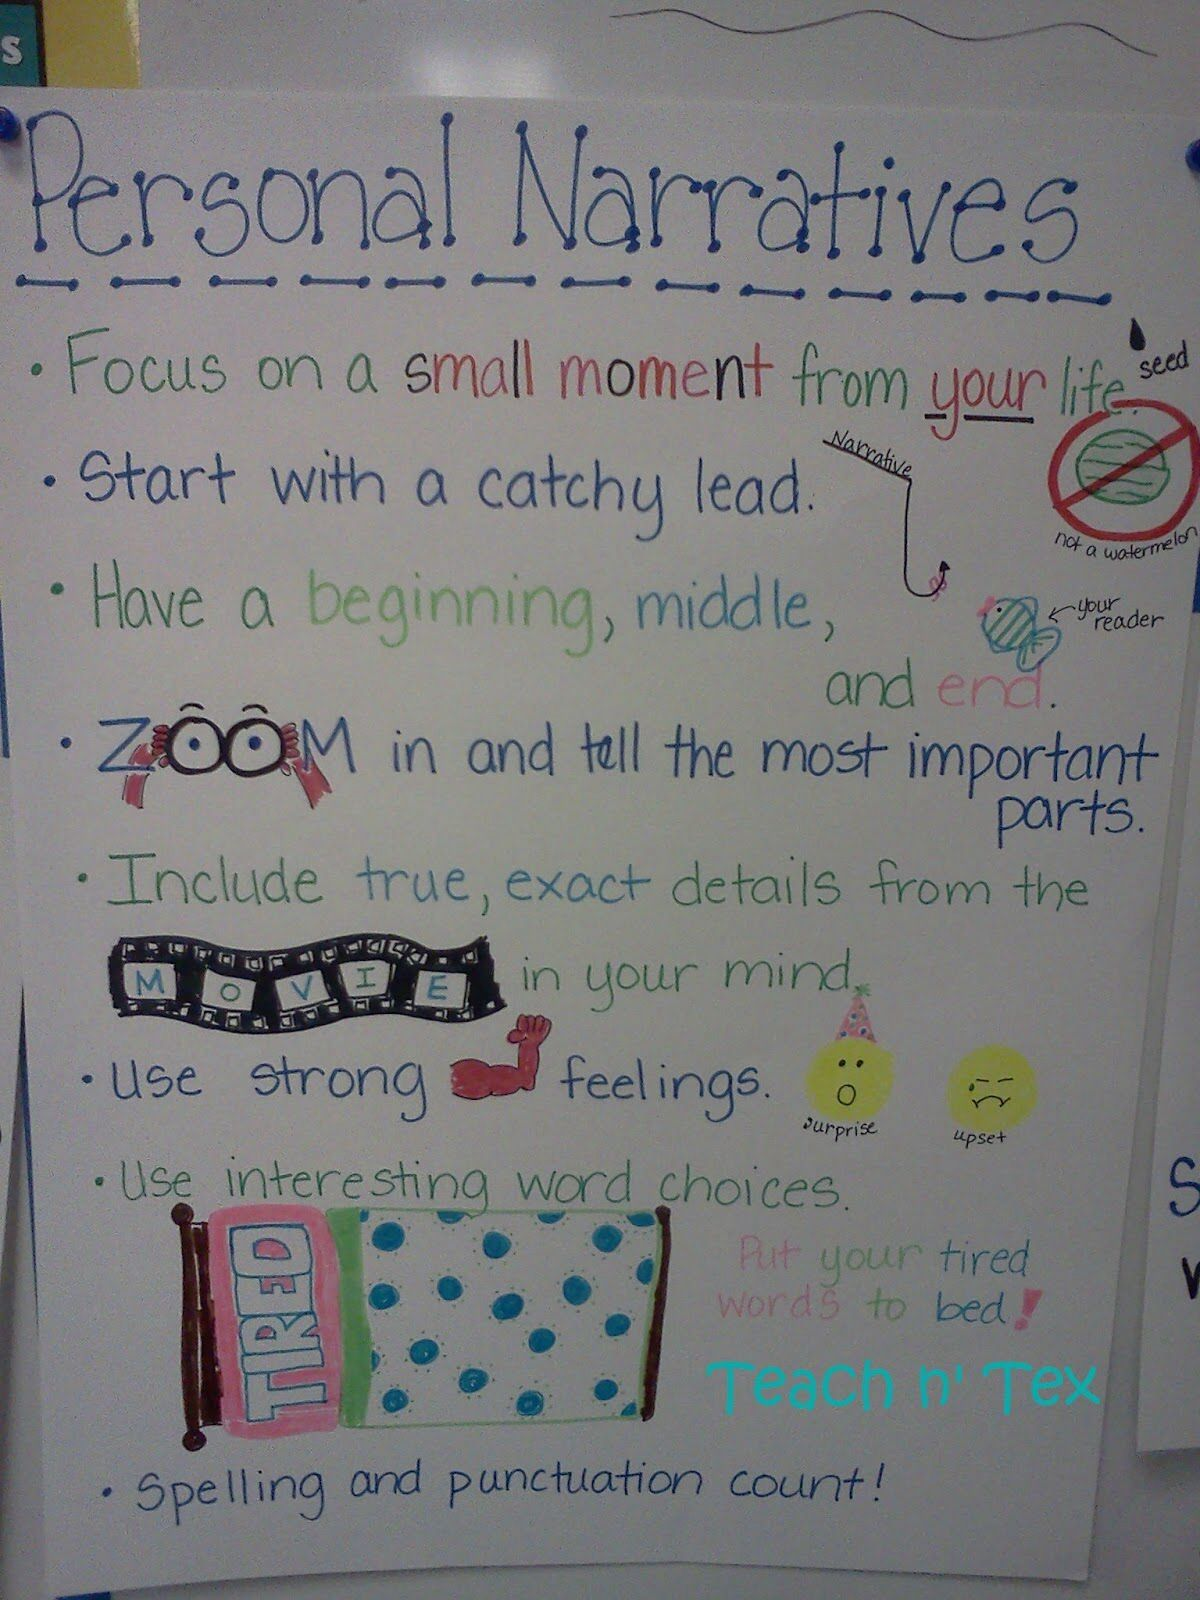 personal narratives Chapter 8: the personal narrative (structure) published november 2009 the personal narrative is the most common structure for the personal statement genre.